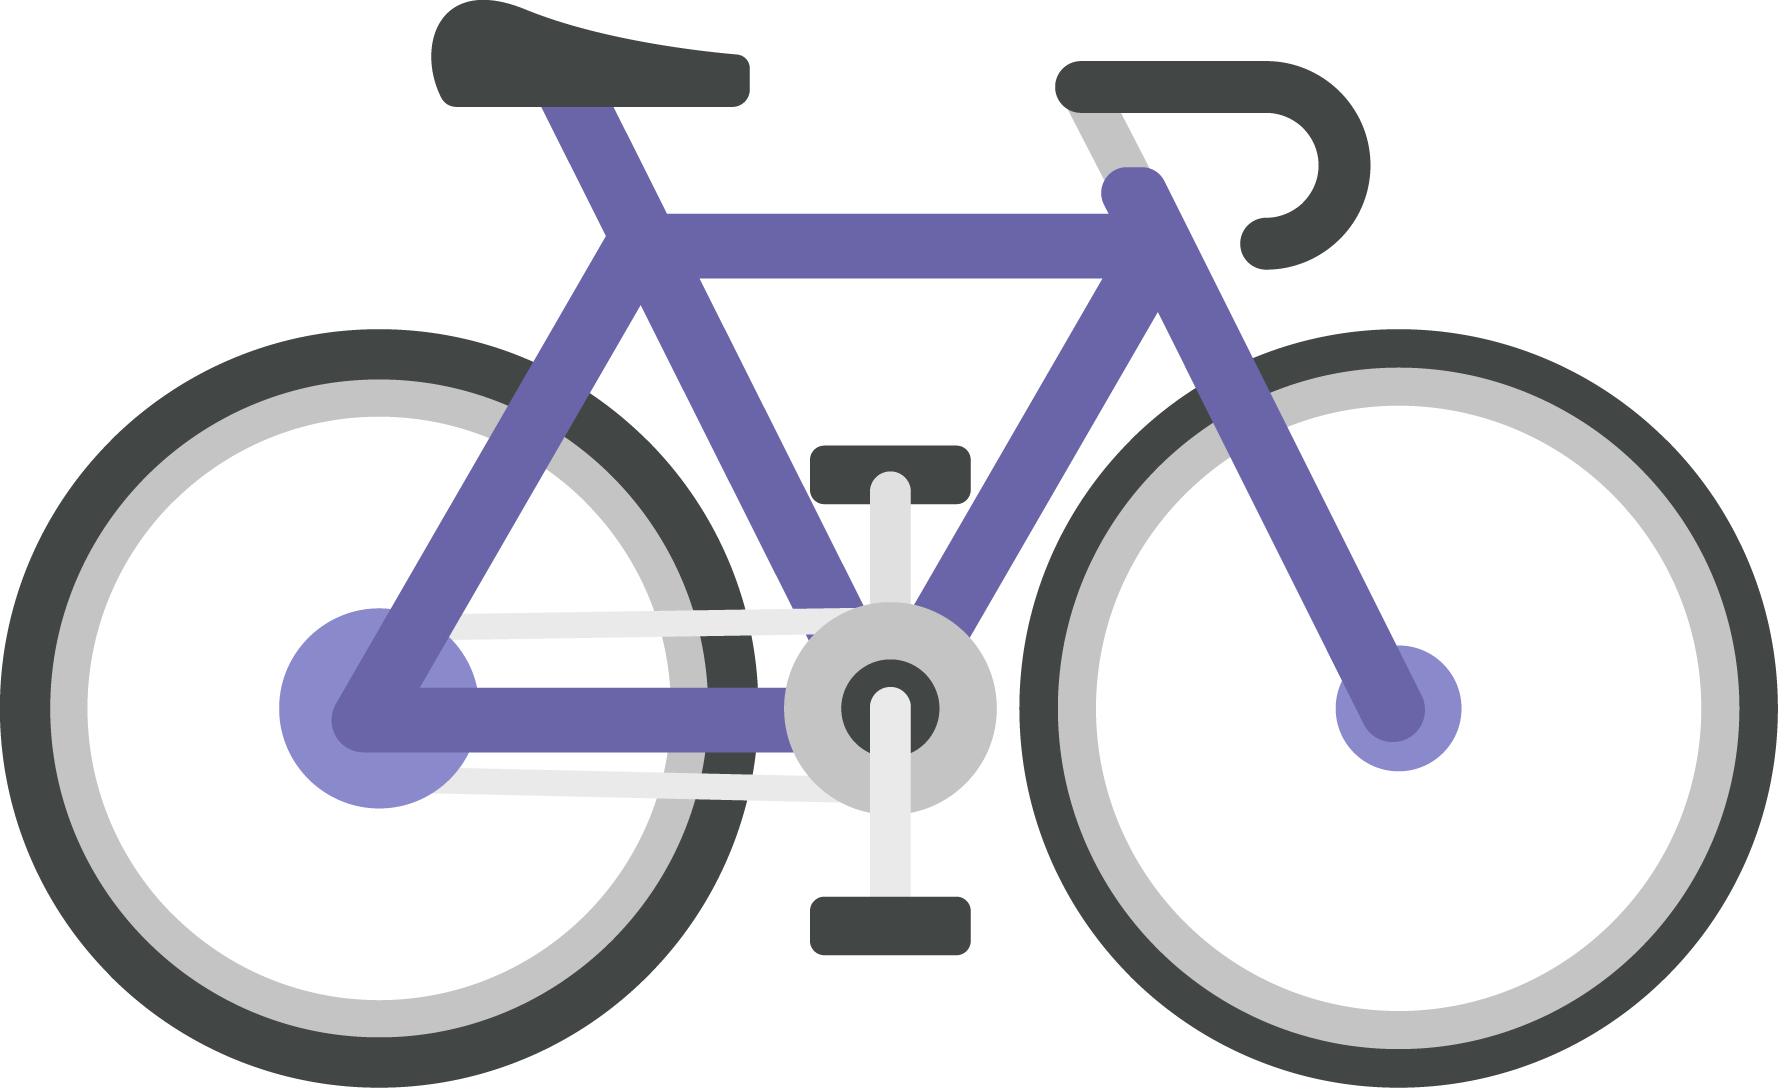 Electric bicycle cycling icon. Clipart bike purple bike